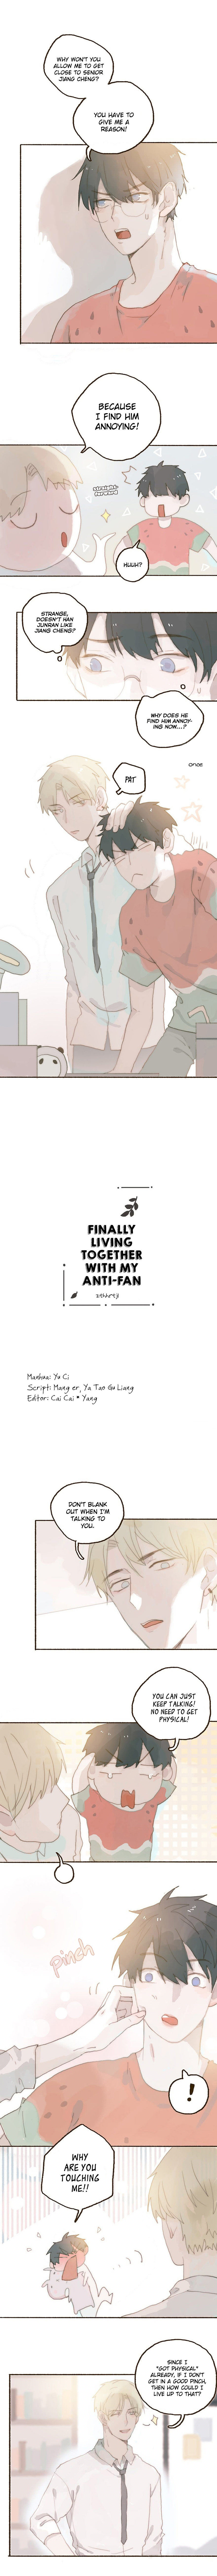 Finally Living Together with my Anti Fan Ch. 30 Stop, Han Junran!